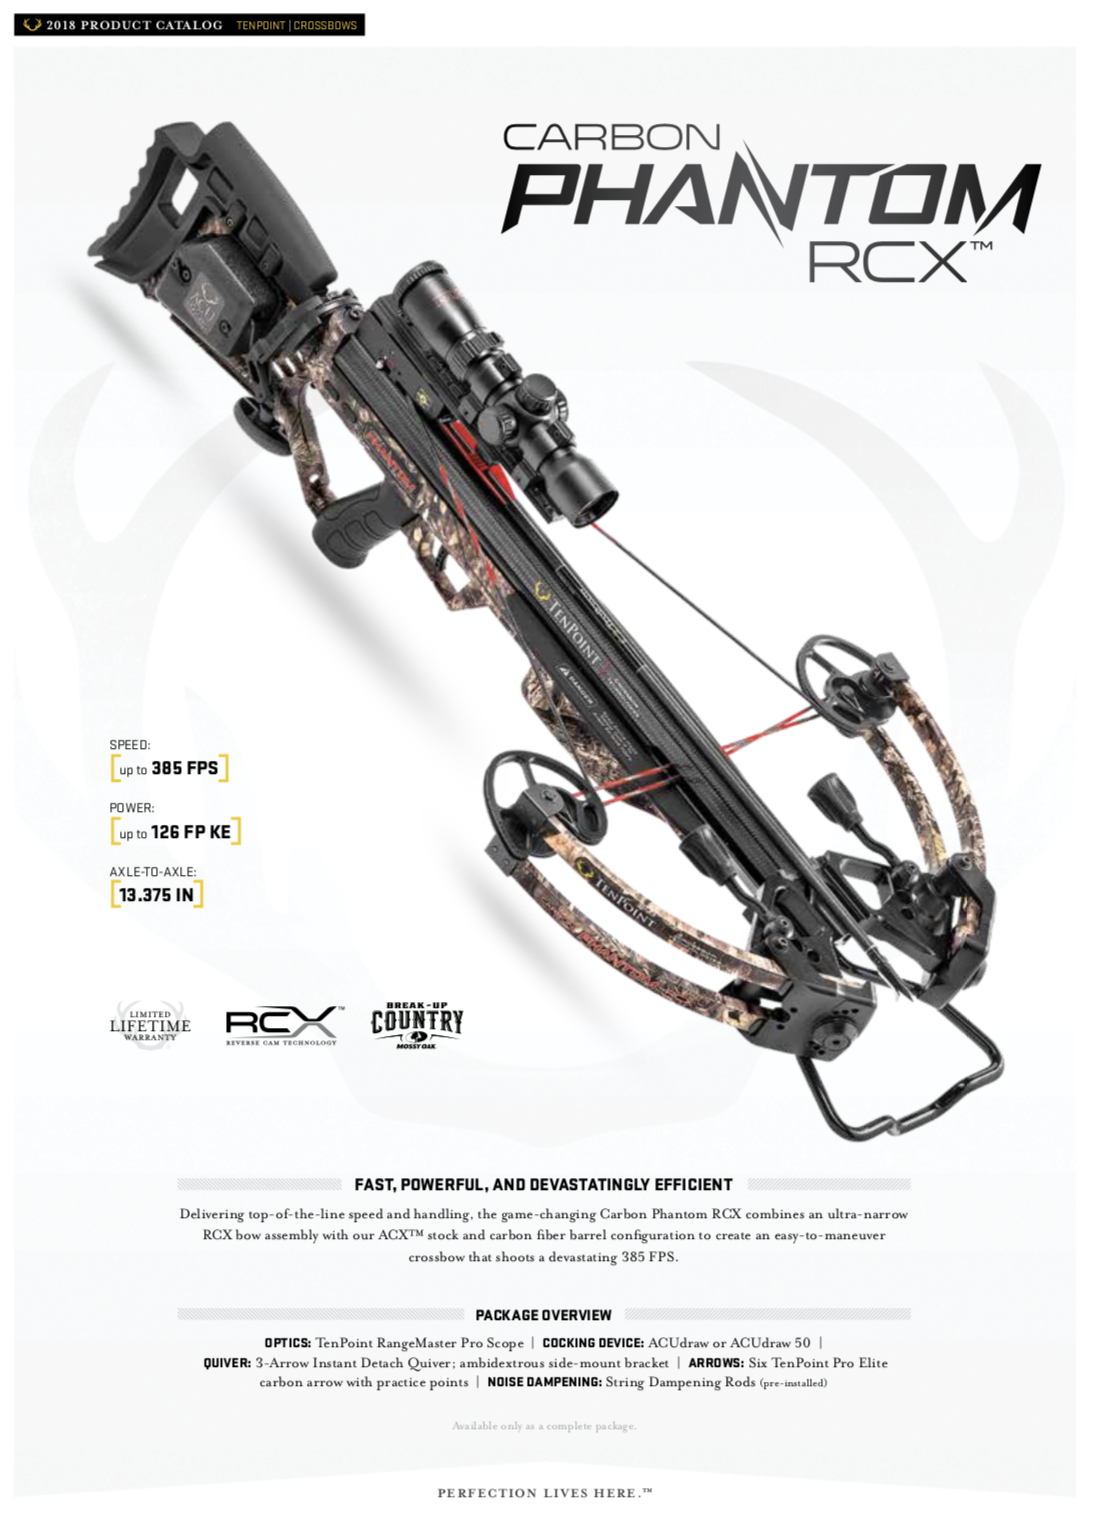 Carbon-phantom rcx